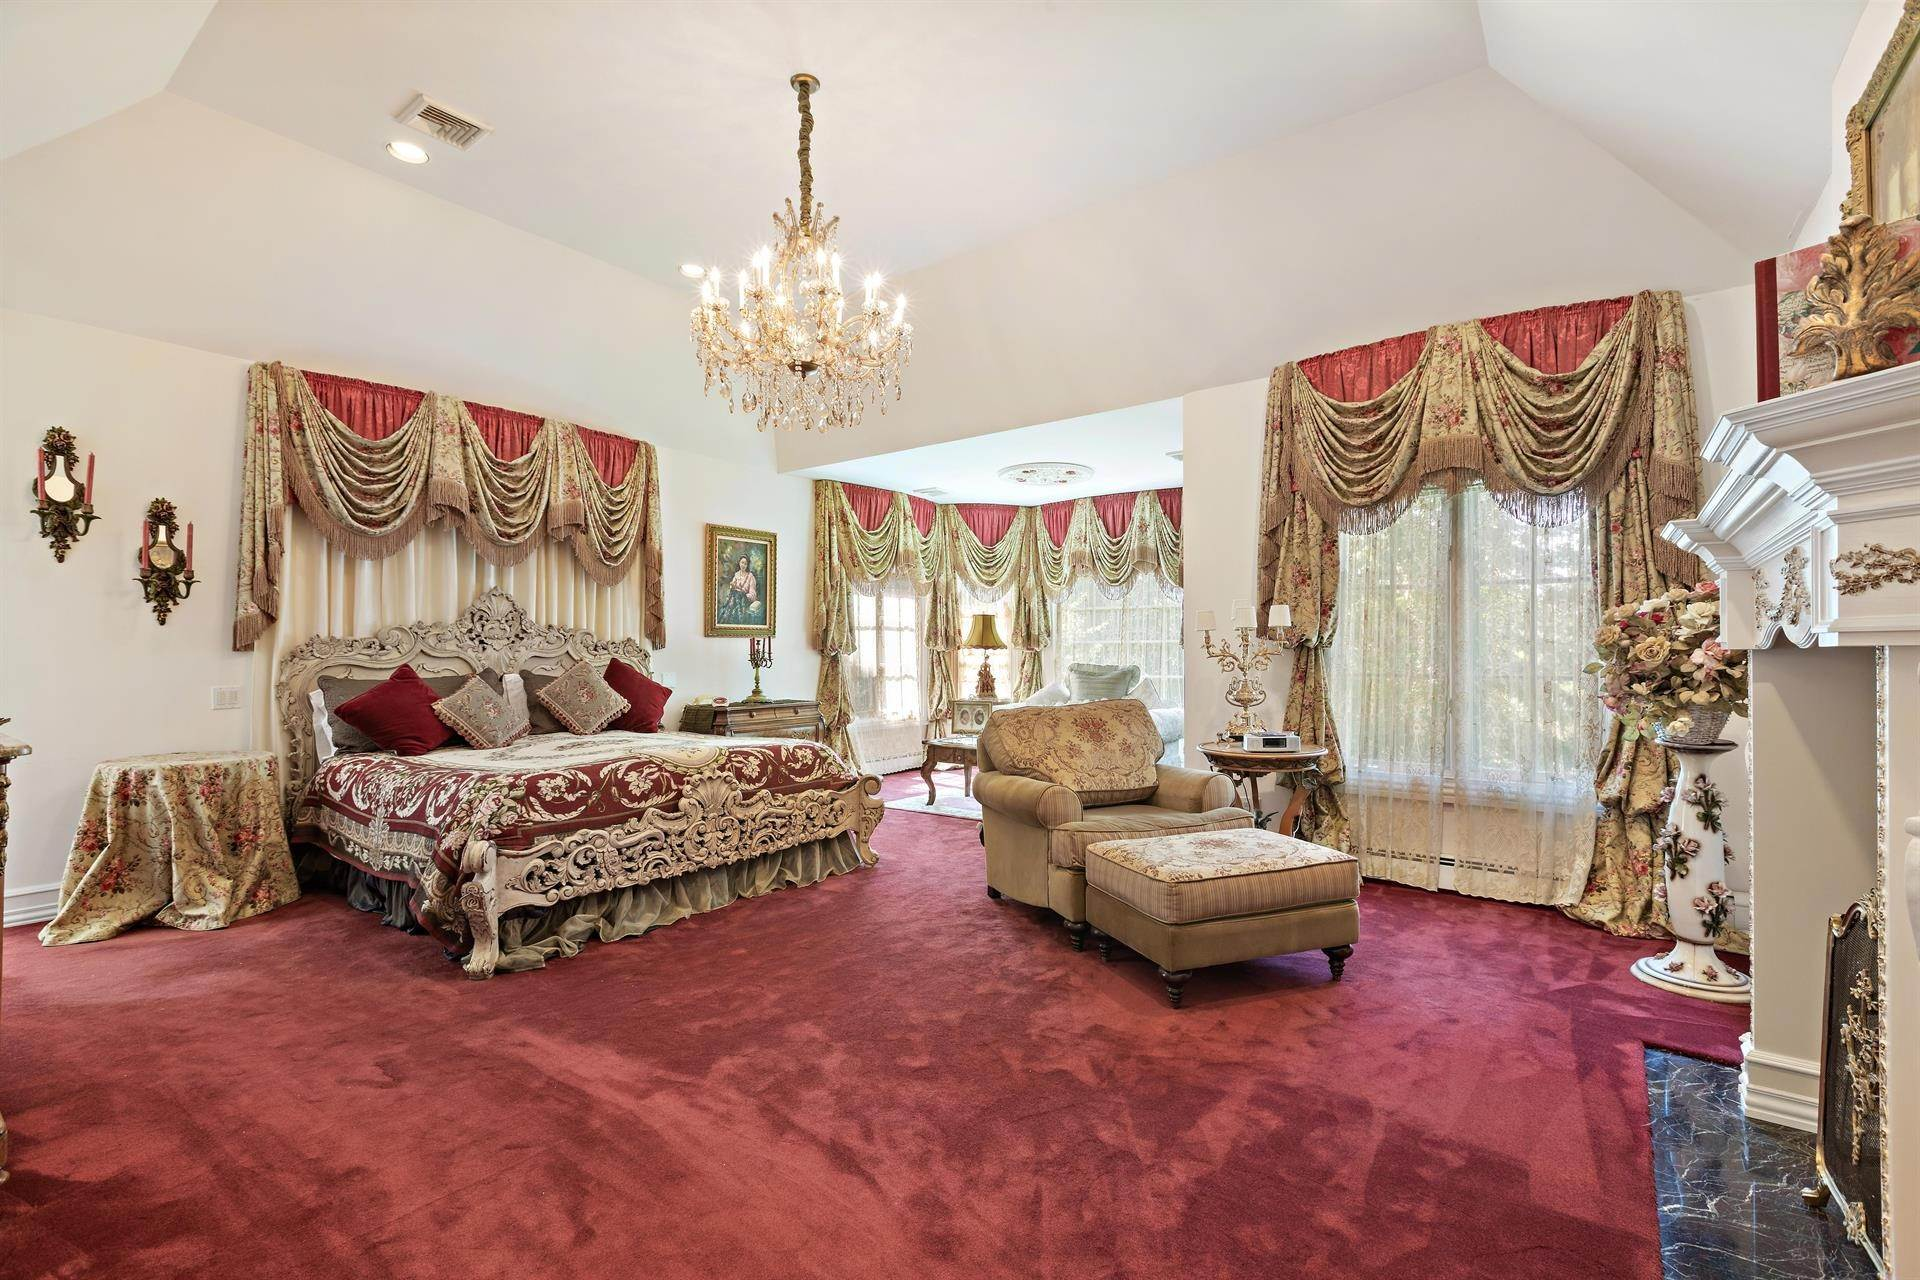 32. Residential for Sale at 15 Hunter Ridge Woodcliff Lake, New Jersey, 07677 United States